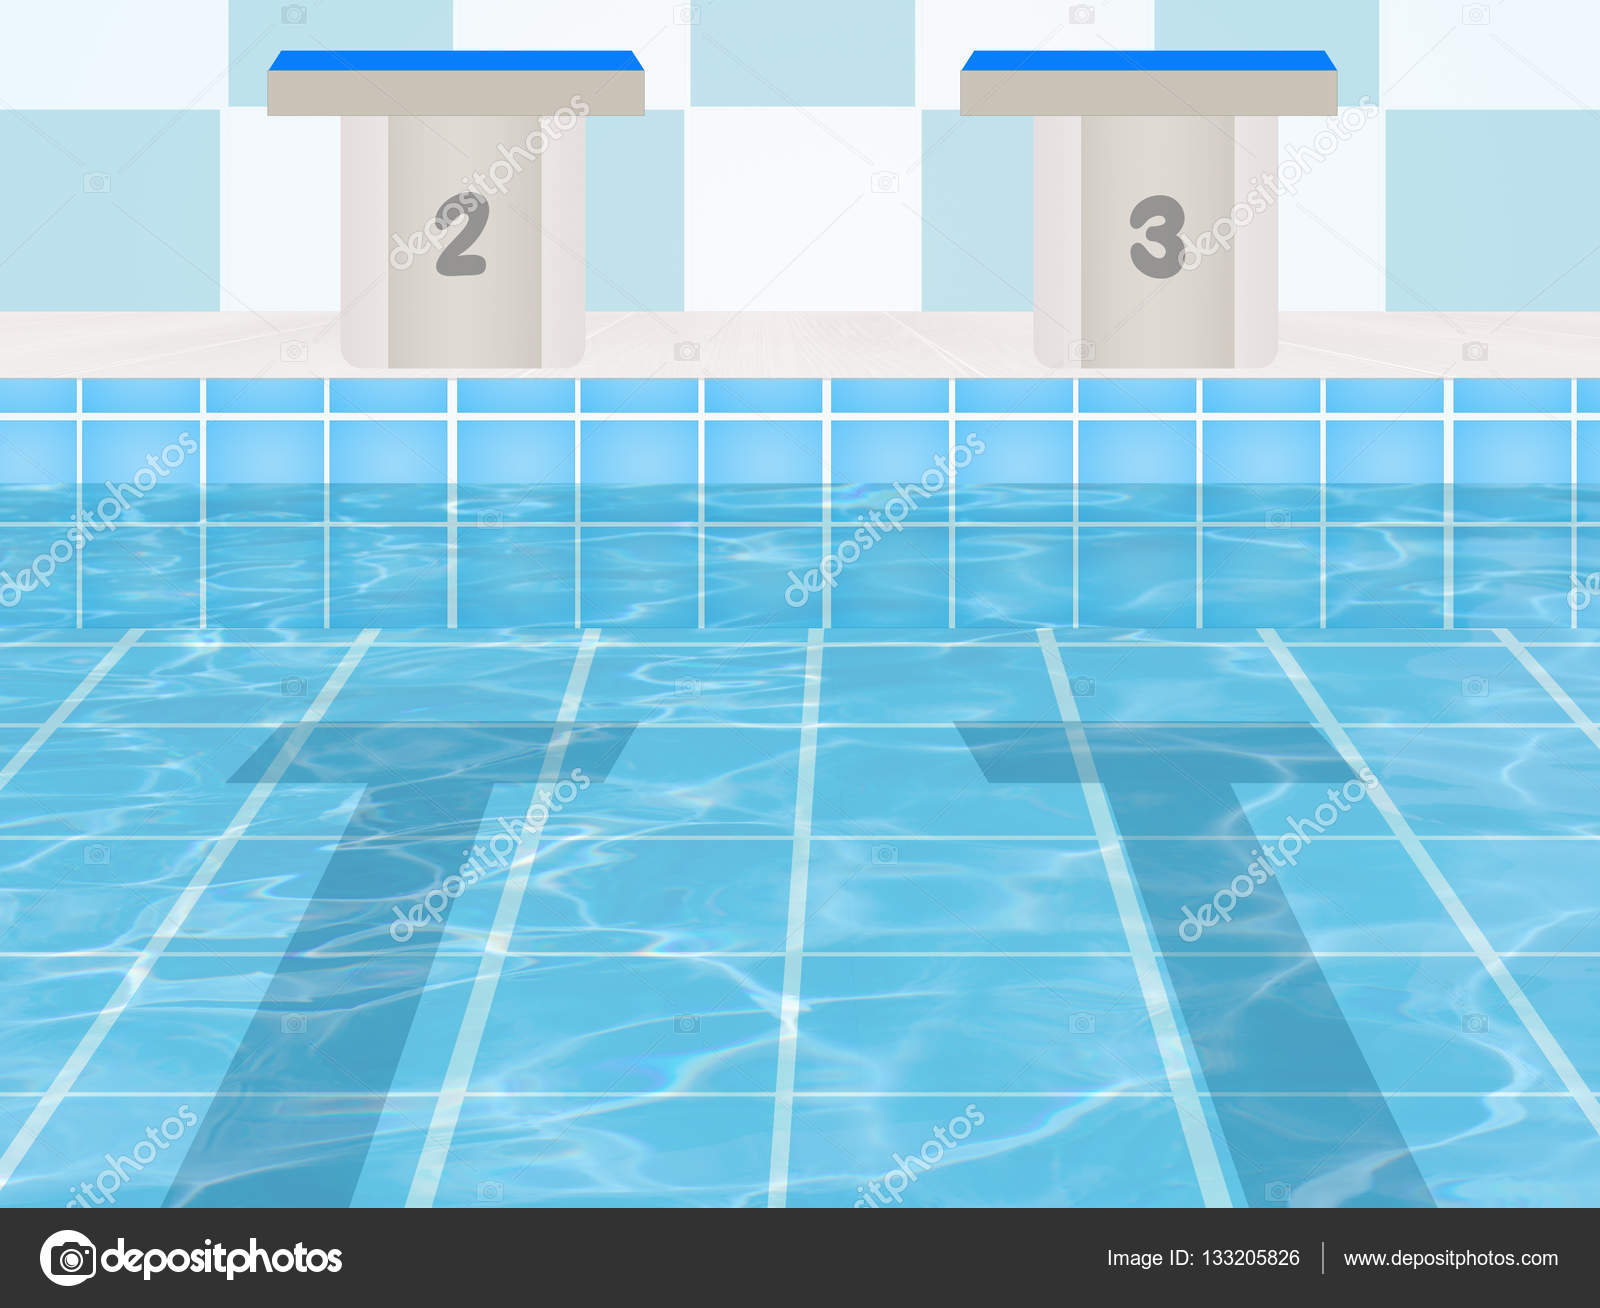 Olympic Swimming Pool Diagram The Olympic Swimming Pool By Gary8345 Olympic Swimming Pool Deep